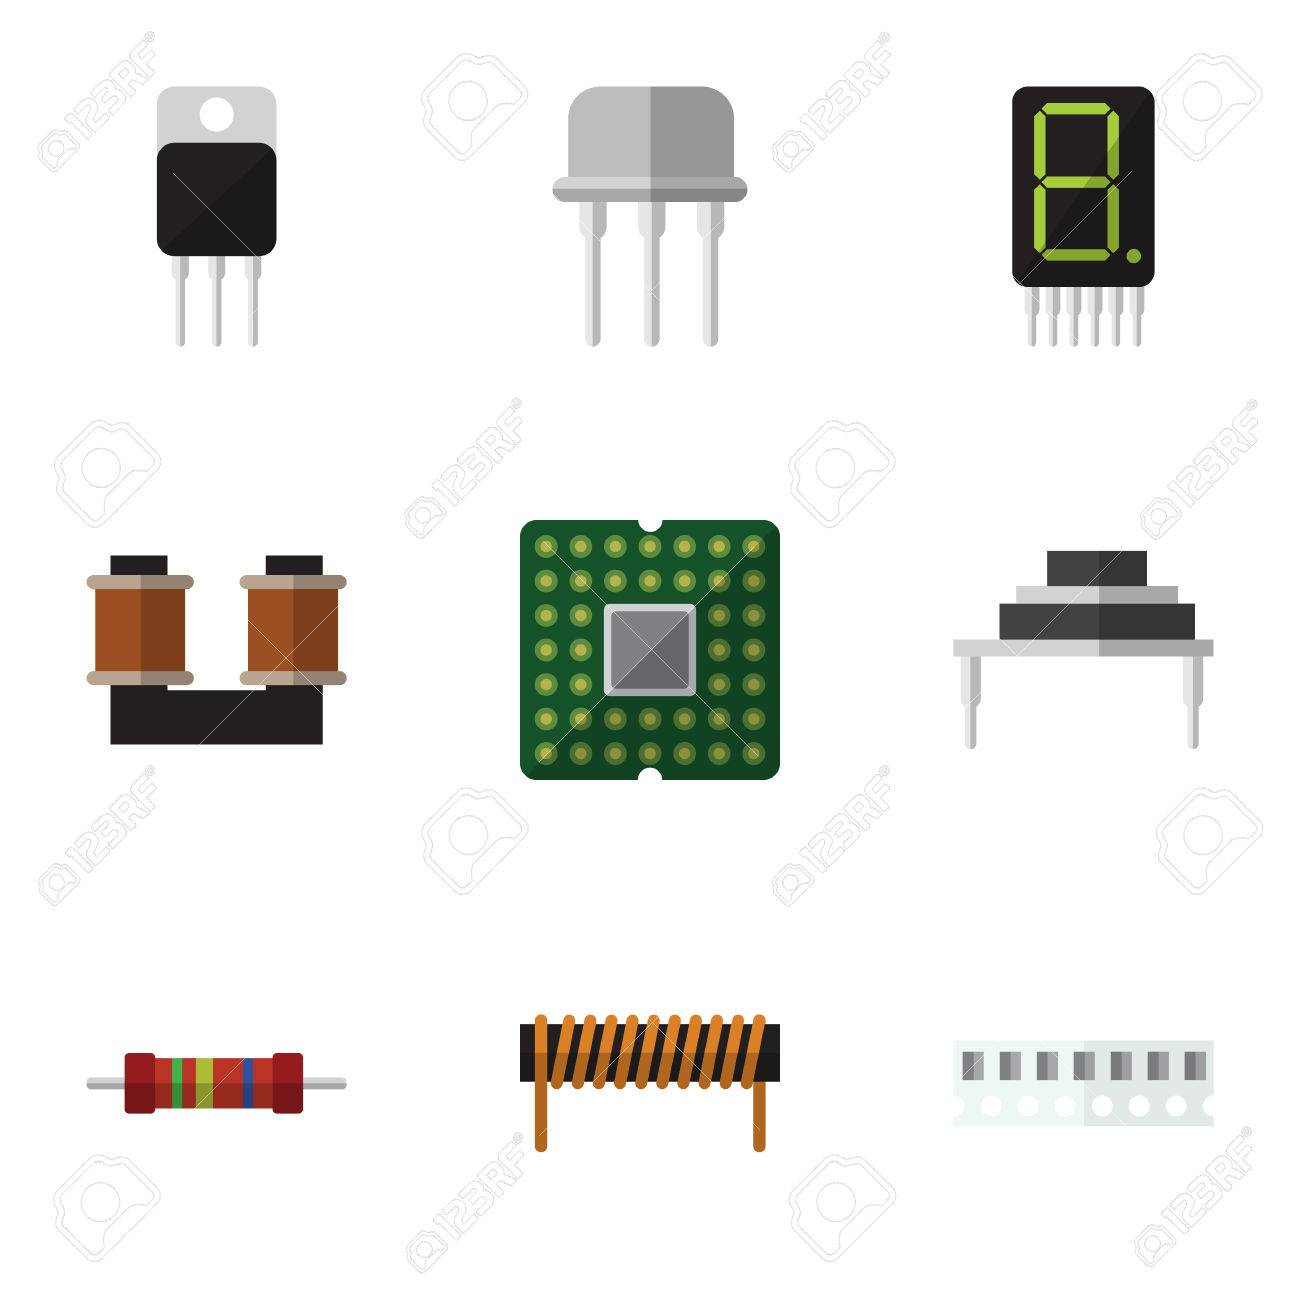 Flat Icon Appliance Set Of Destination Memory Receiver And Circuitry An Electronic Calculator Royalty Free Stock Photography Other Vector Objects Also